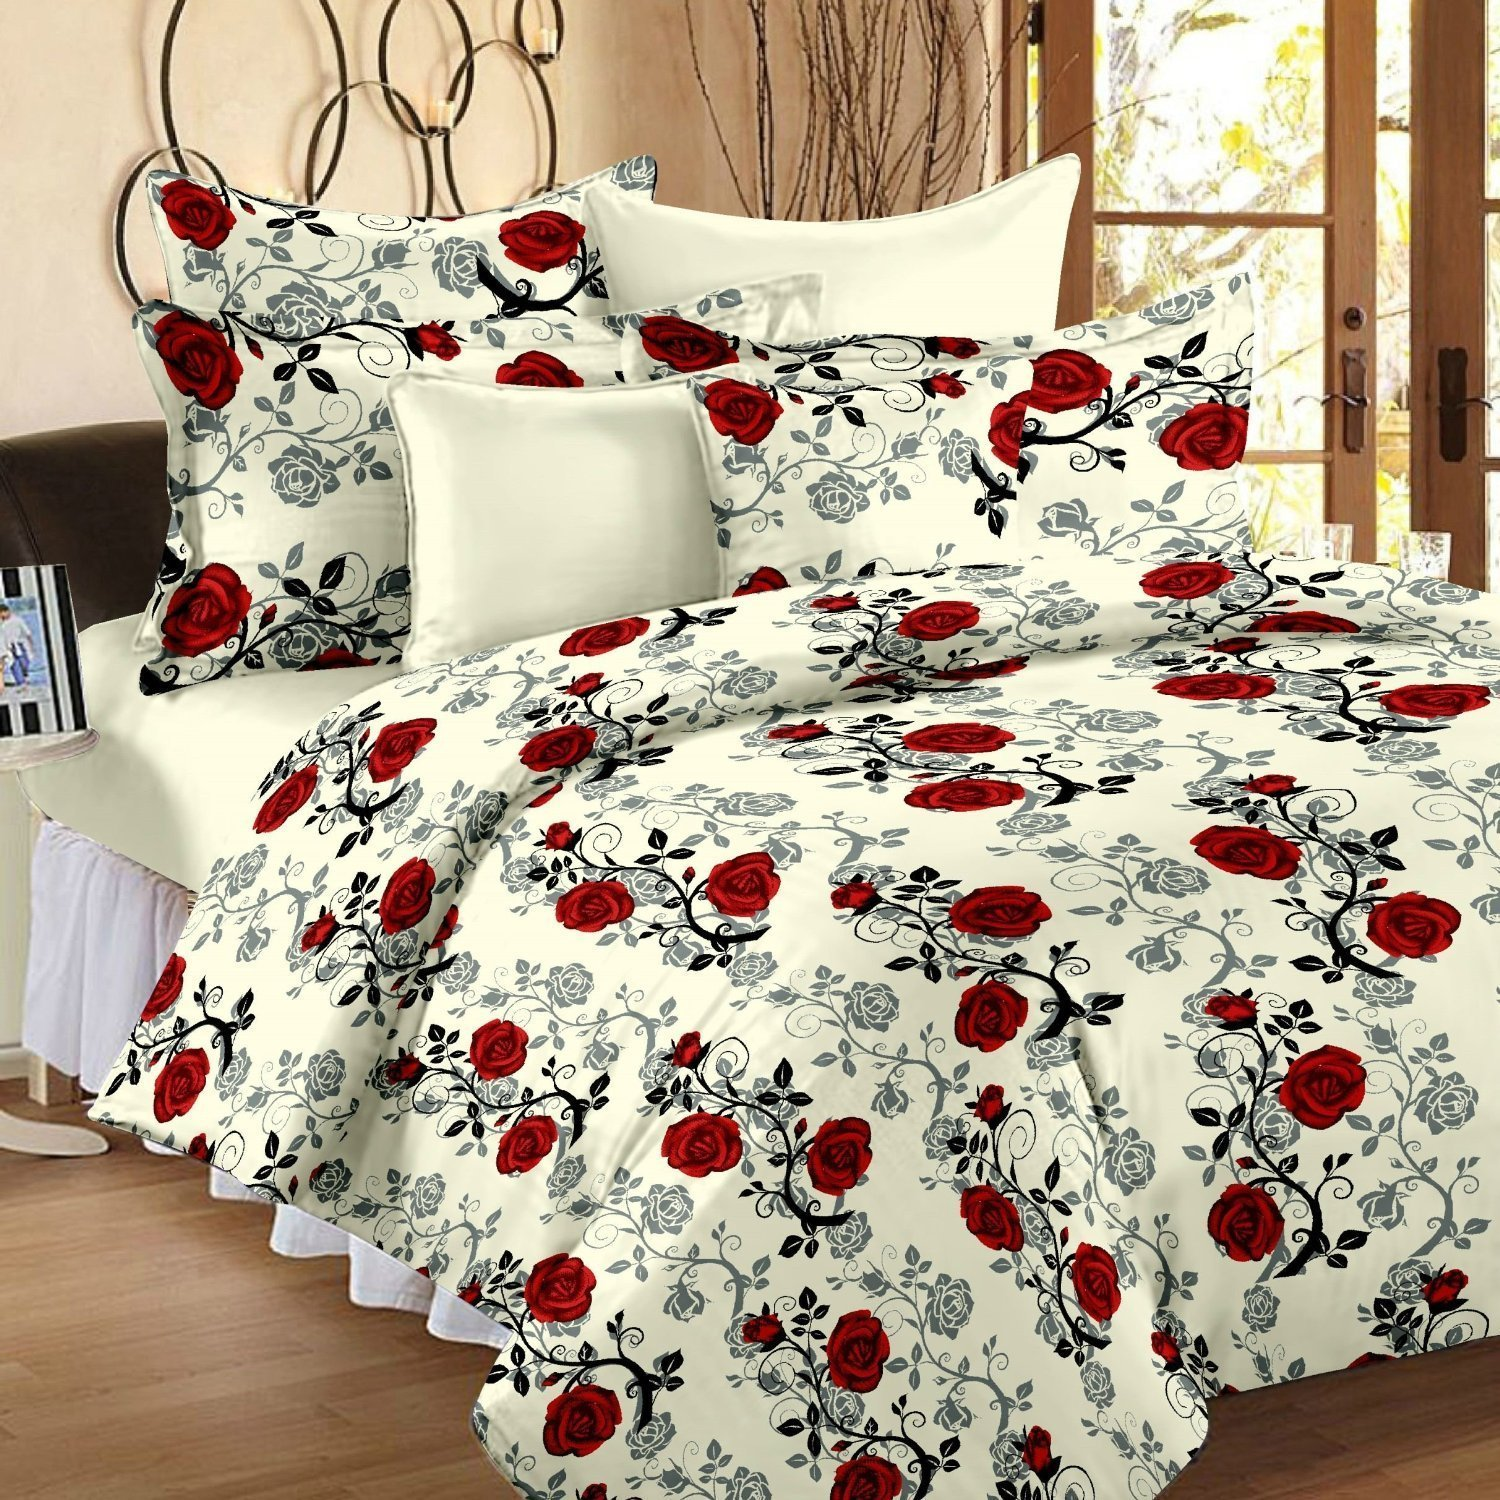 bedding sets buy bedding sets online at best prices in india